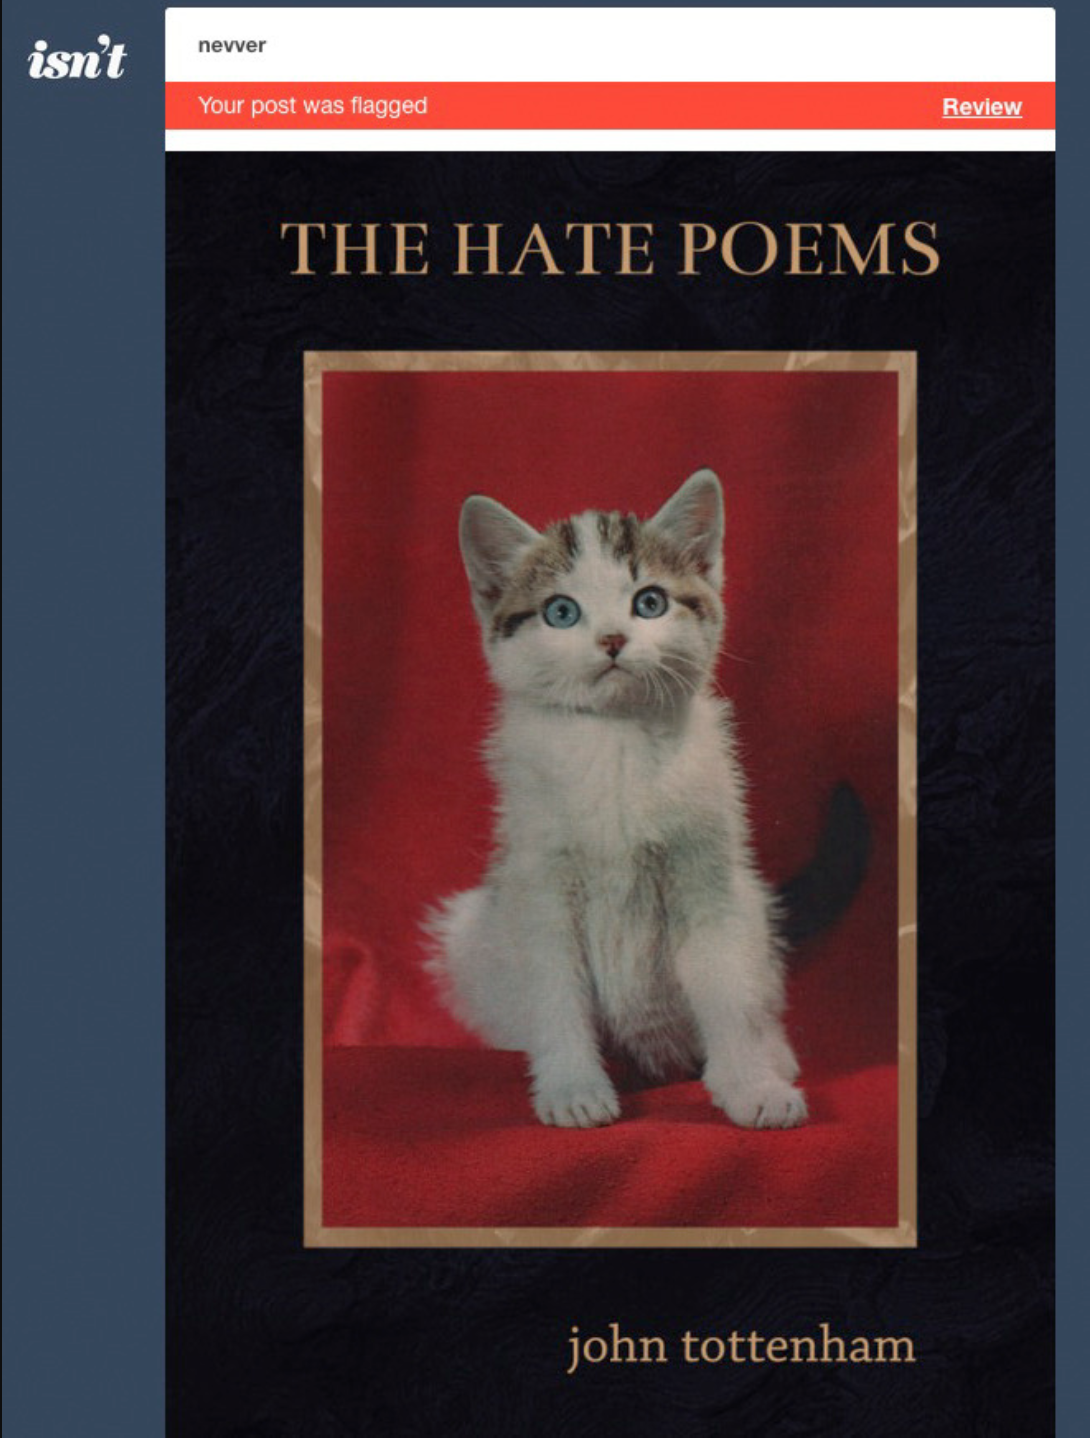 This post by Tumblr blog   Nevver   was flagged. The kitty looks shocked because he's wondering why Tumblr thinks he is NSFW. He is suitable for everywhere, okay?